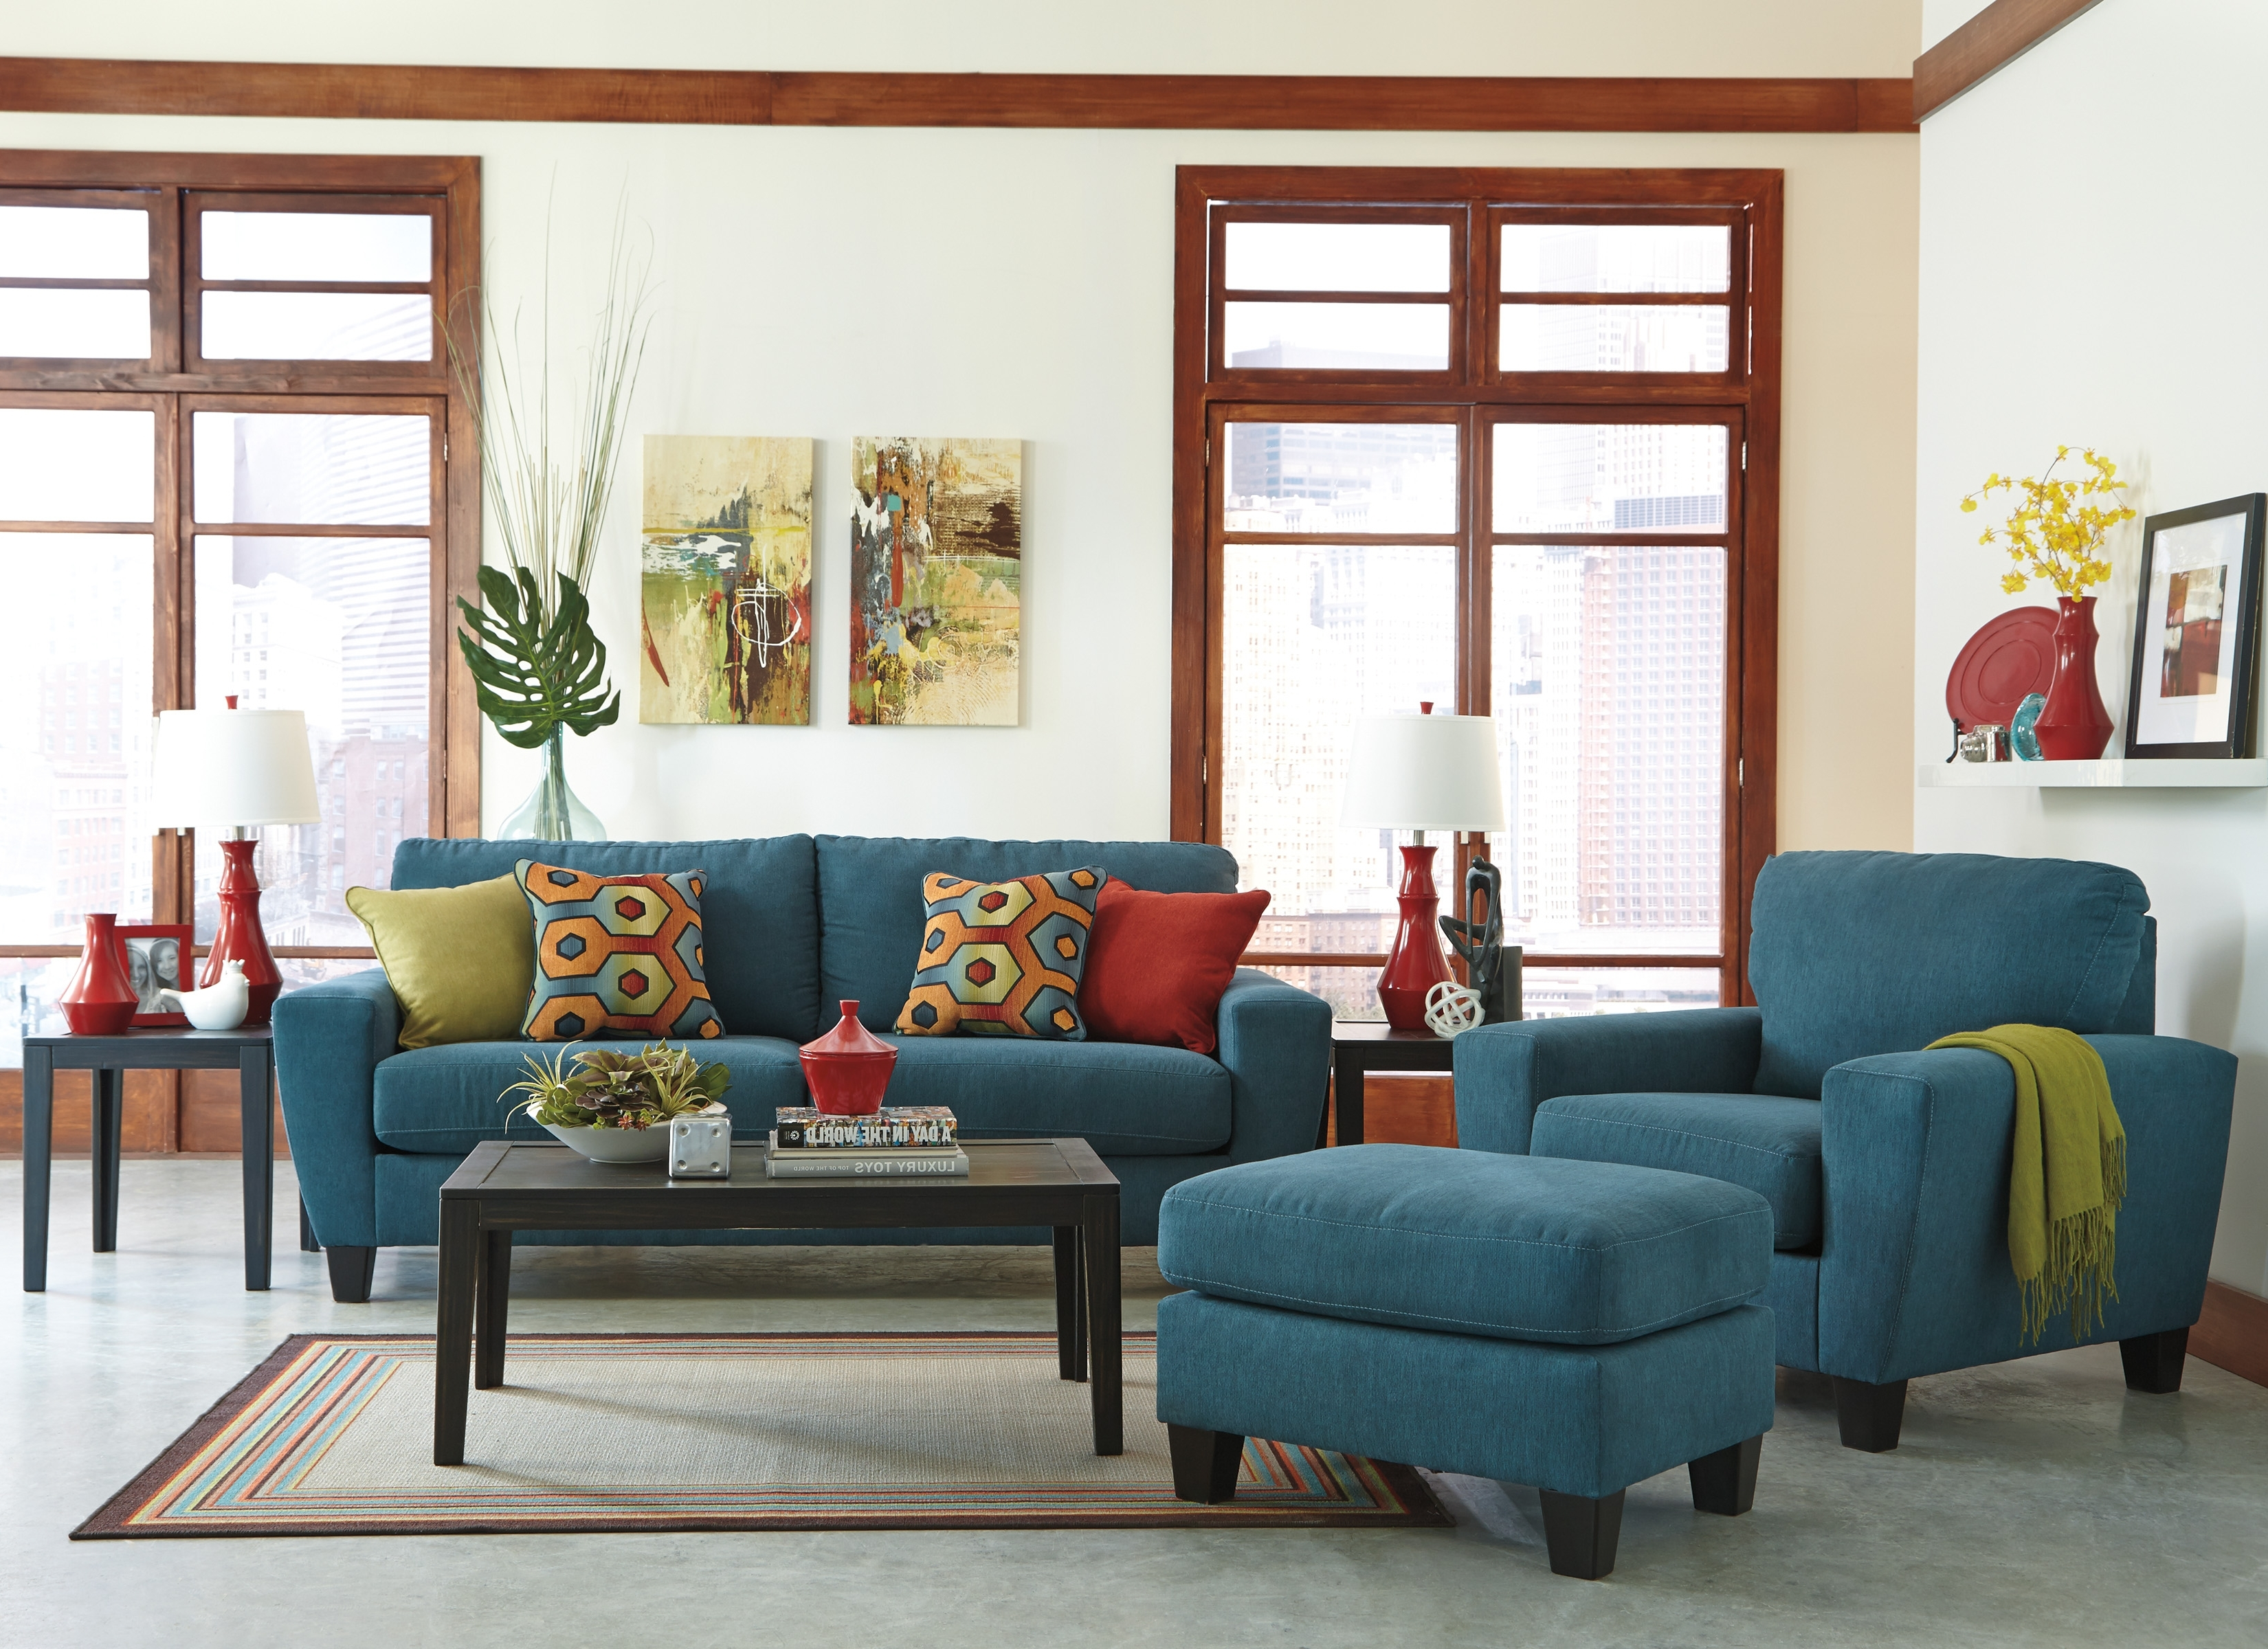 Living Room Sofa And Chair Sets Regarding Well Known Leather Sofa And Chair Sets Covers Small Seater Settee Chairs (View 4 of 15)